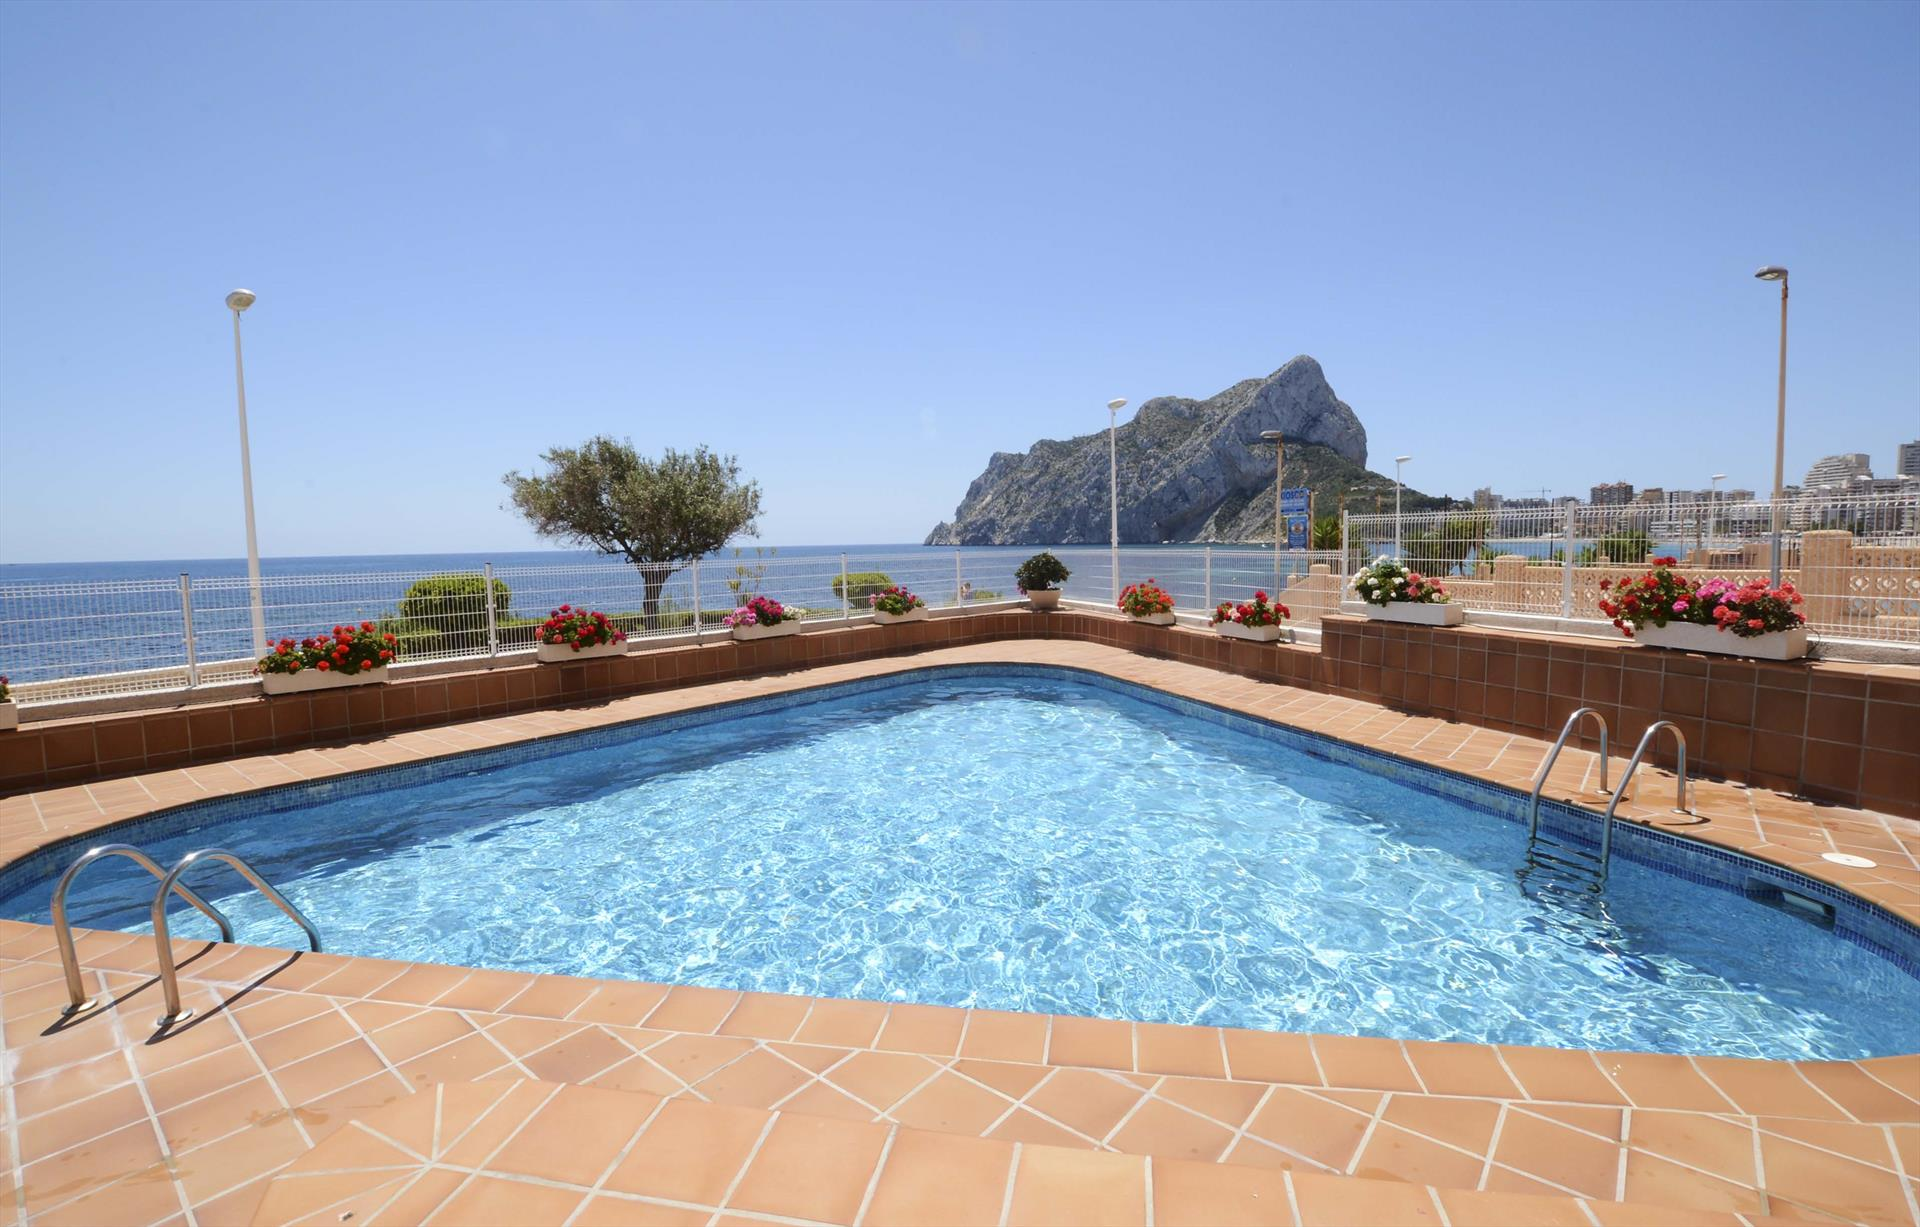 Apartamento Orellana 3B, Apartment in Calpe, on the Costa Blanca, Spain  with communal pool for 4 persons.....